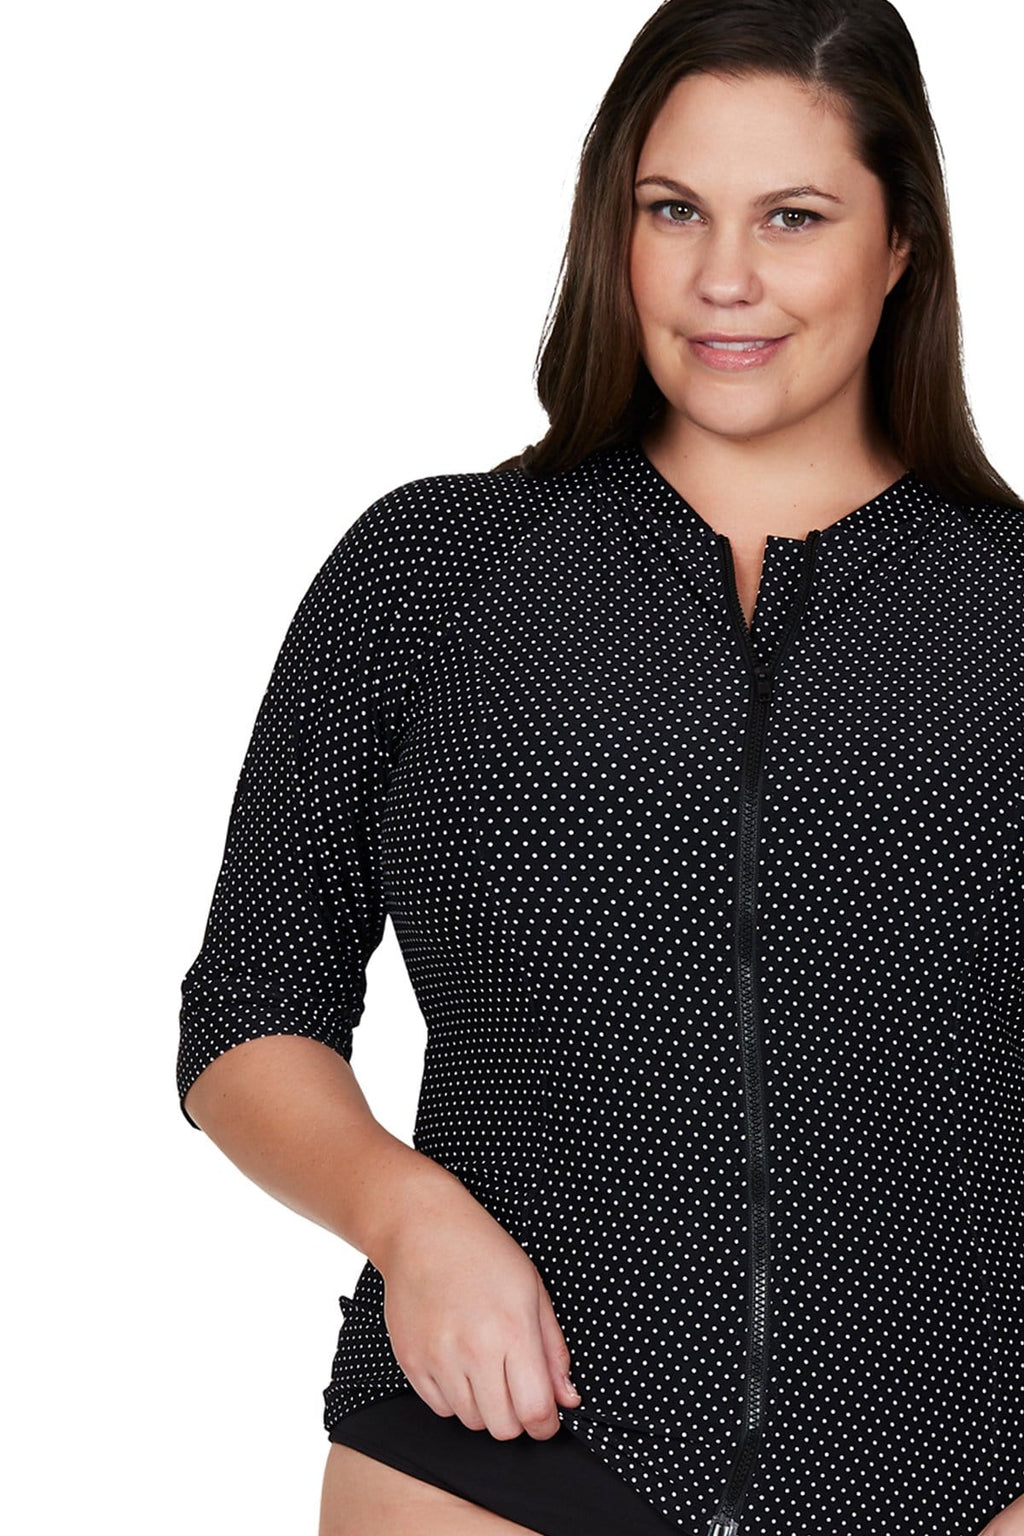 Artesands Top Black Polka Rococo Sunsafe Top Plus Size Curvy